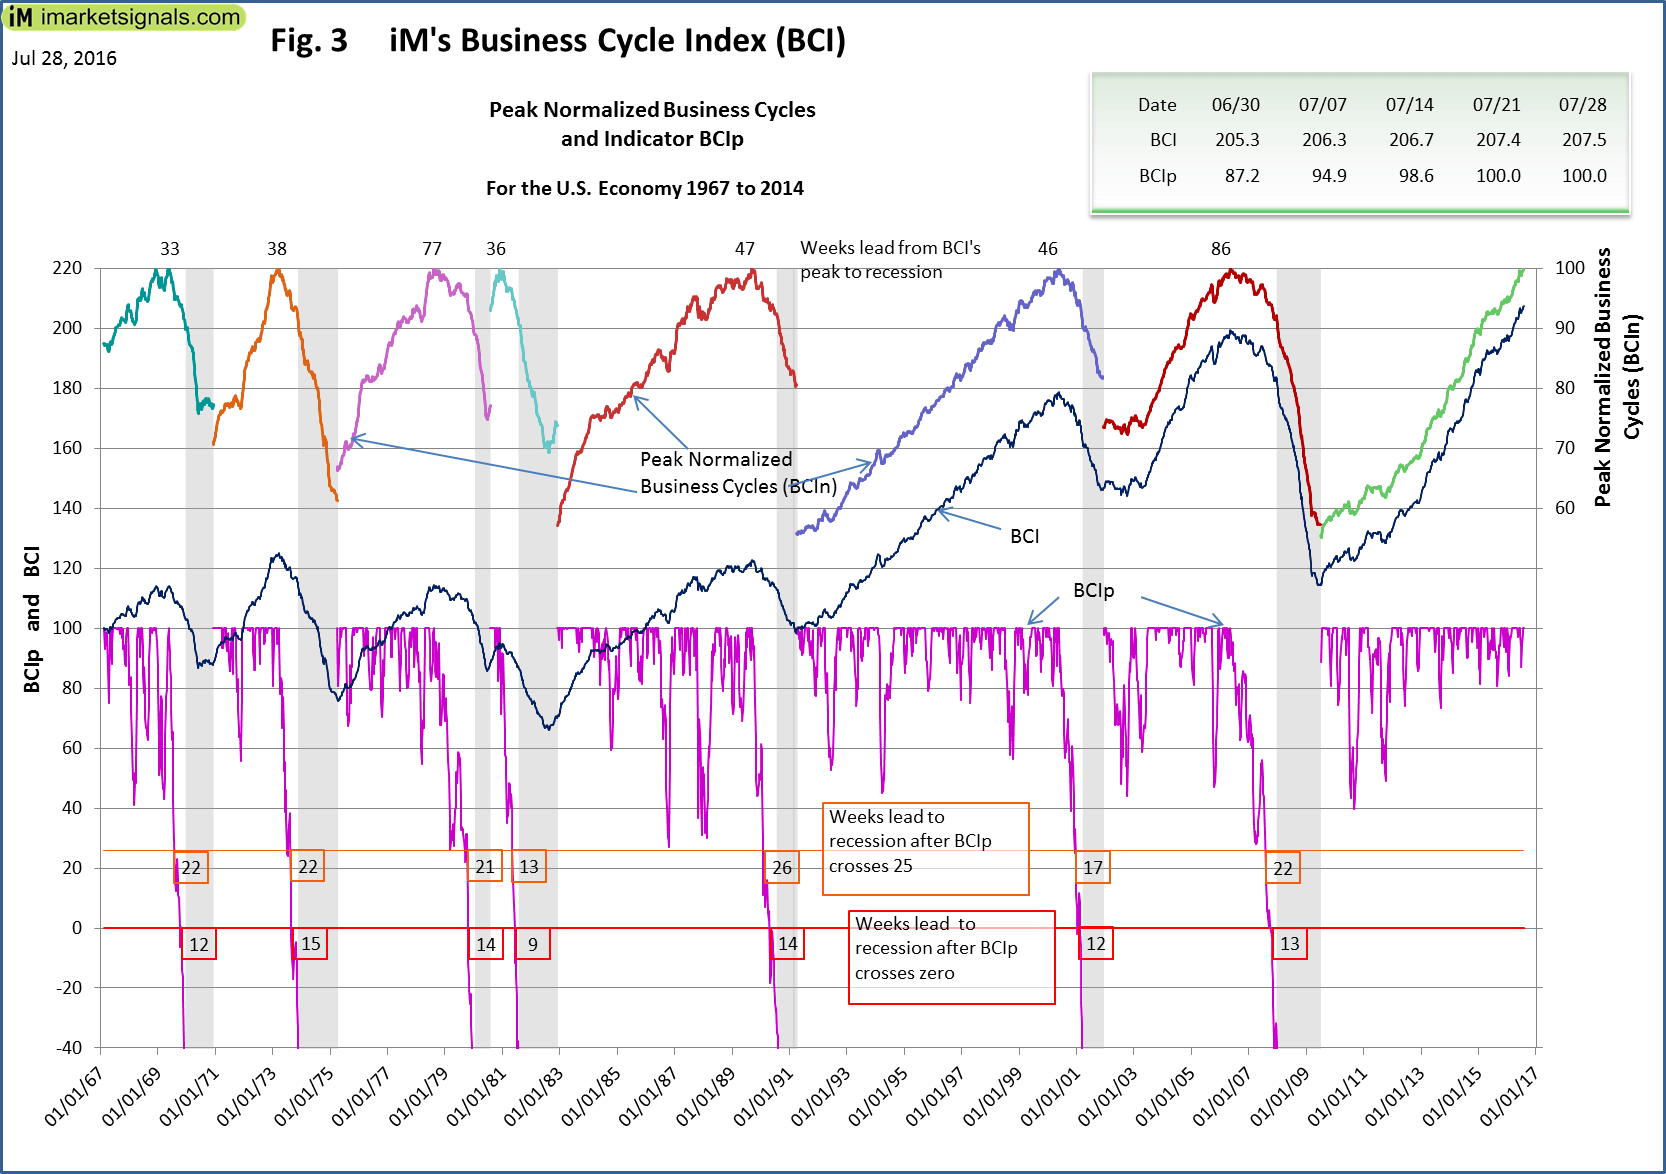 BCI-Fig-3-7-28-2016